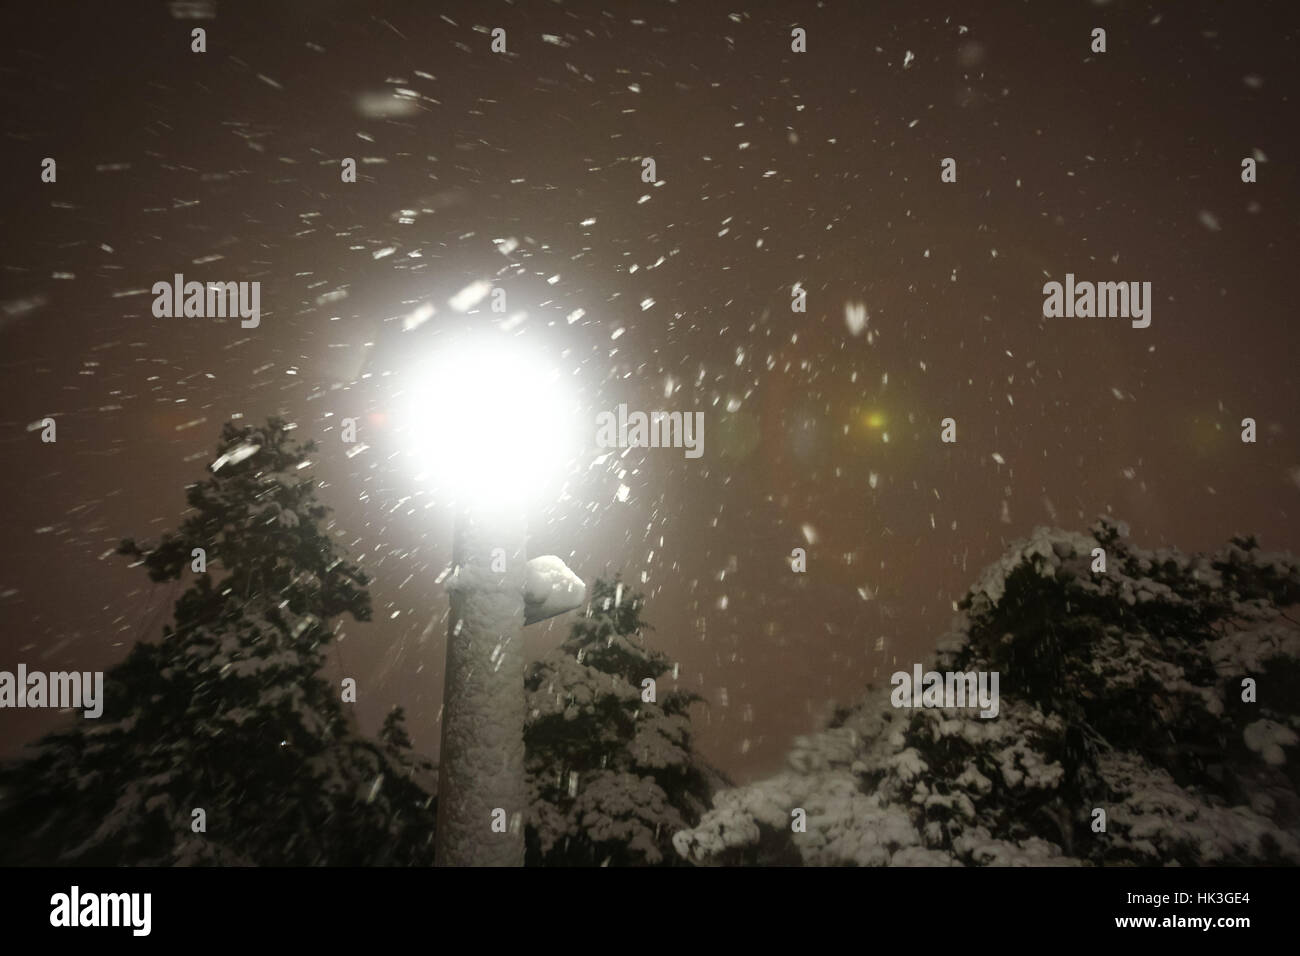 A low angle view of an illuminating street lamp in the park during strong snowfall. - Stock Image